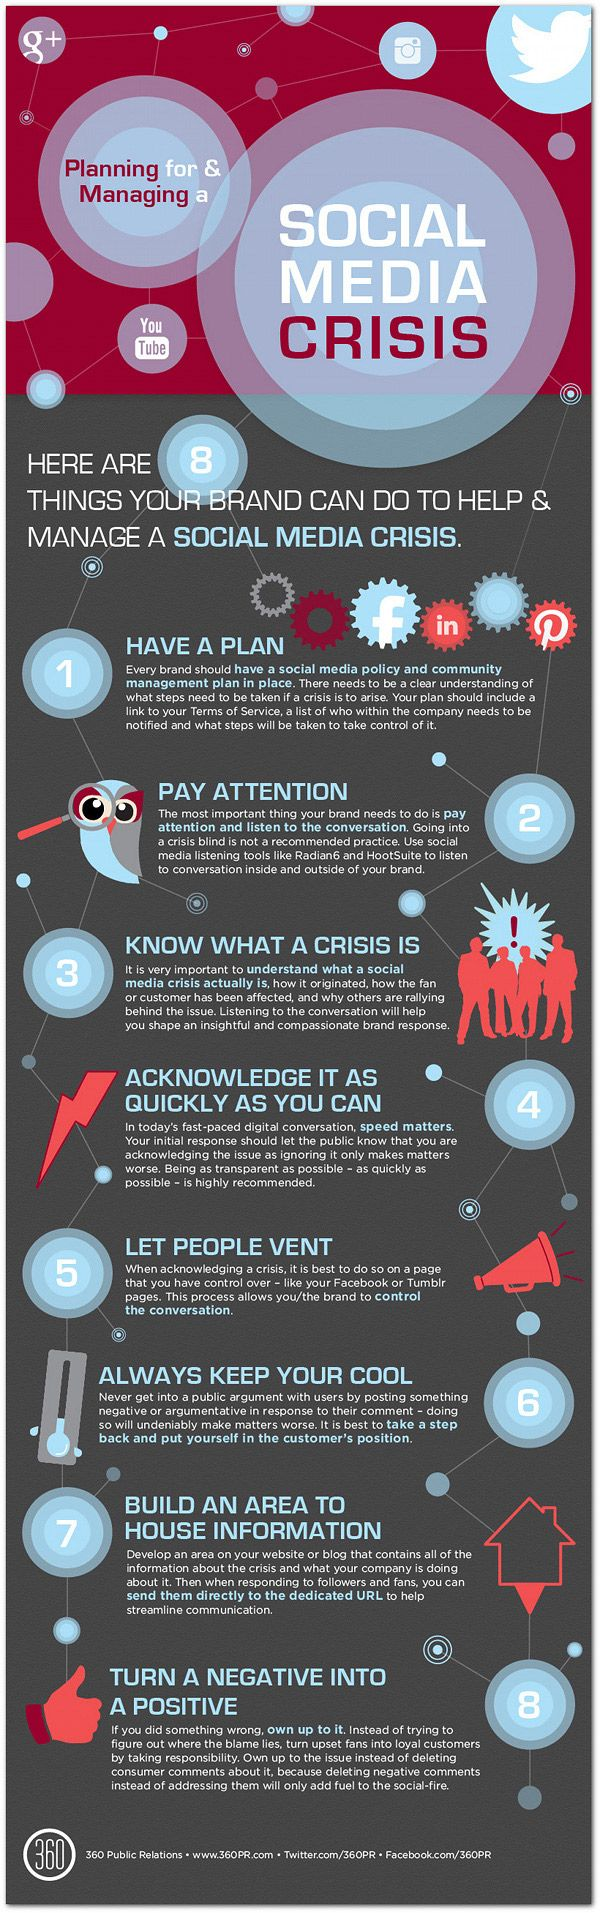 8-steps-shitstorm  Dealing with a social media crisis